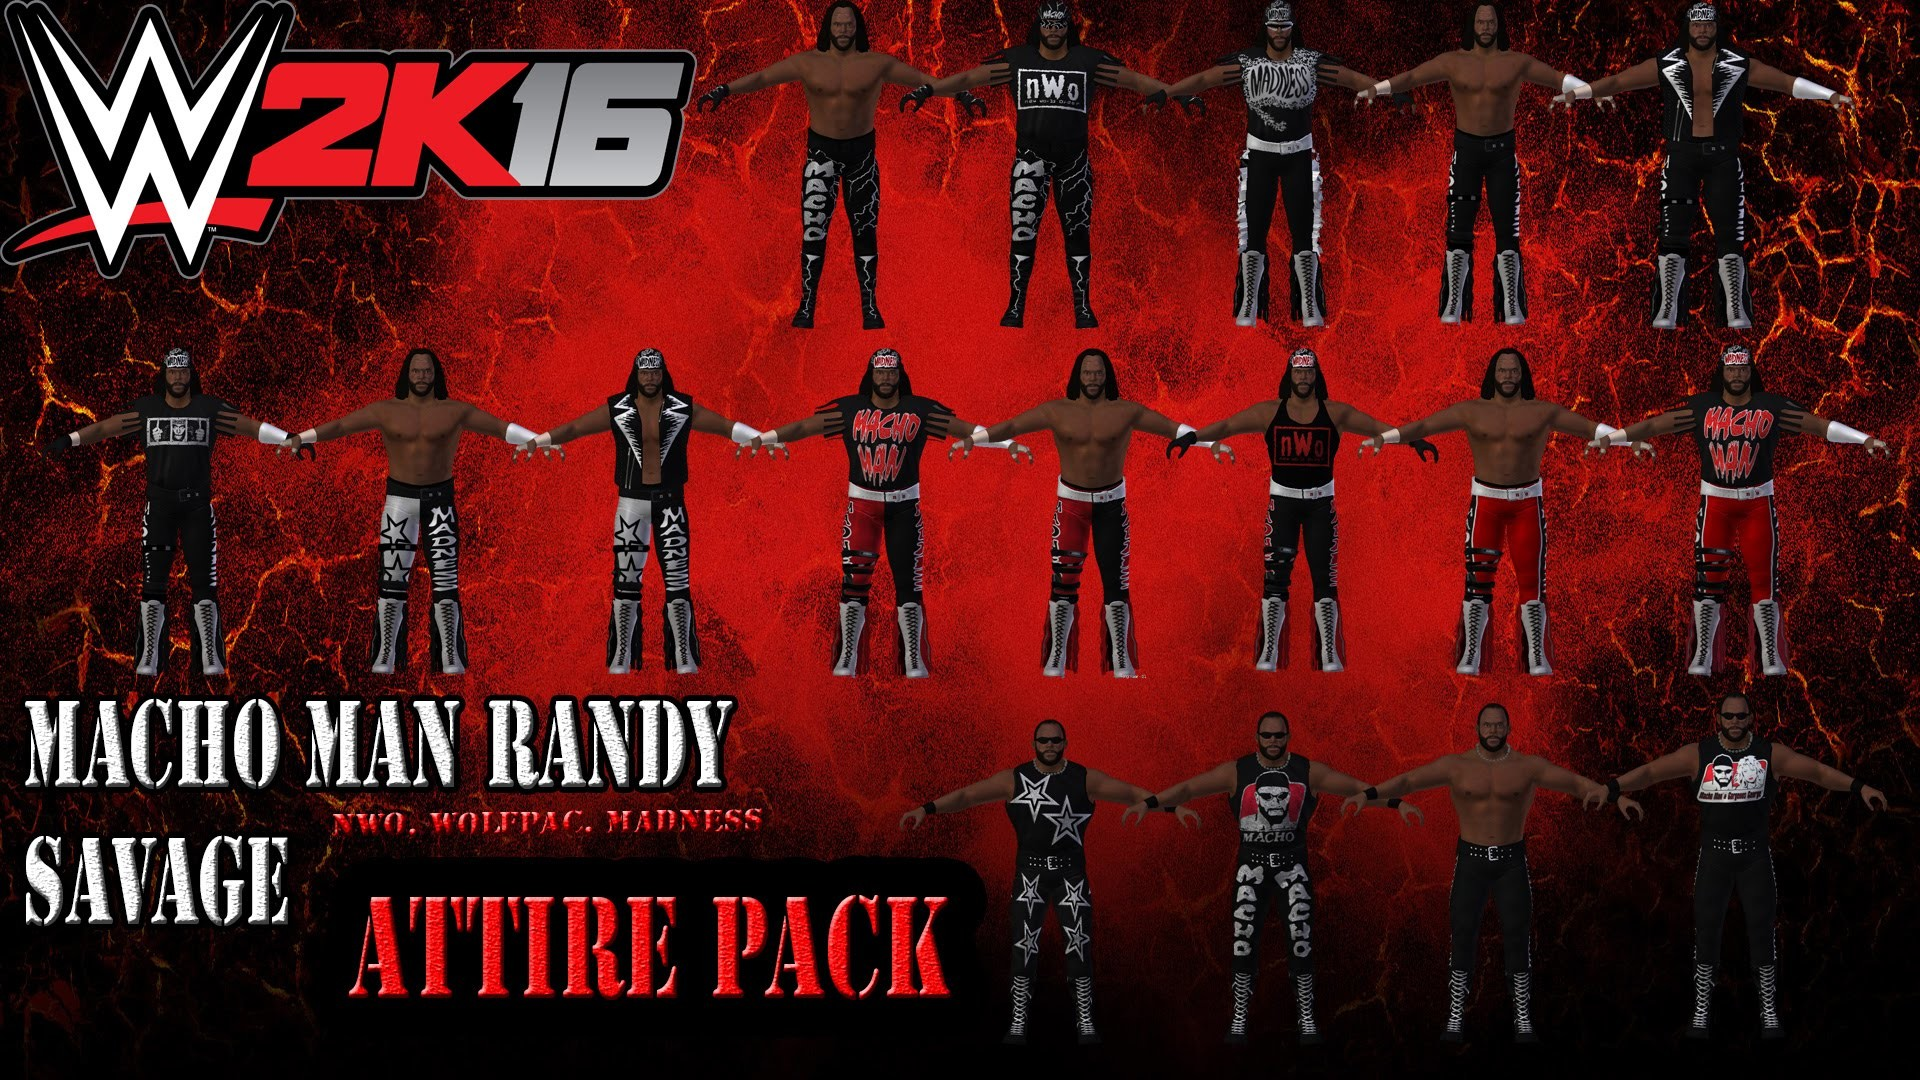 1920x1080 WWE 2K16 MODS: Macho Man Randy Savage - 15+ Attire Pack (WCW, NWO, Wolfpac)  - YouTube